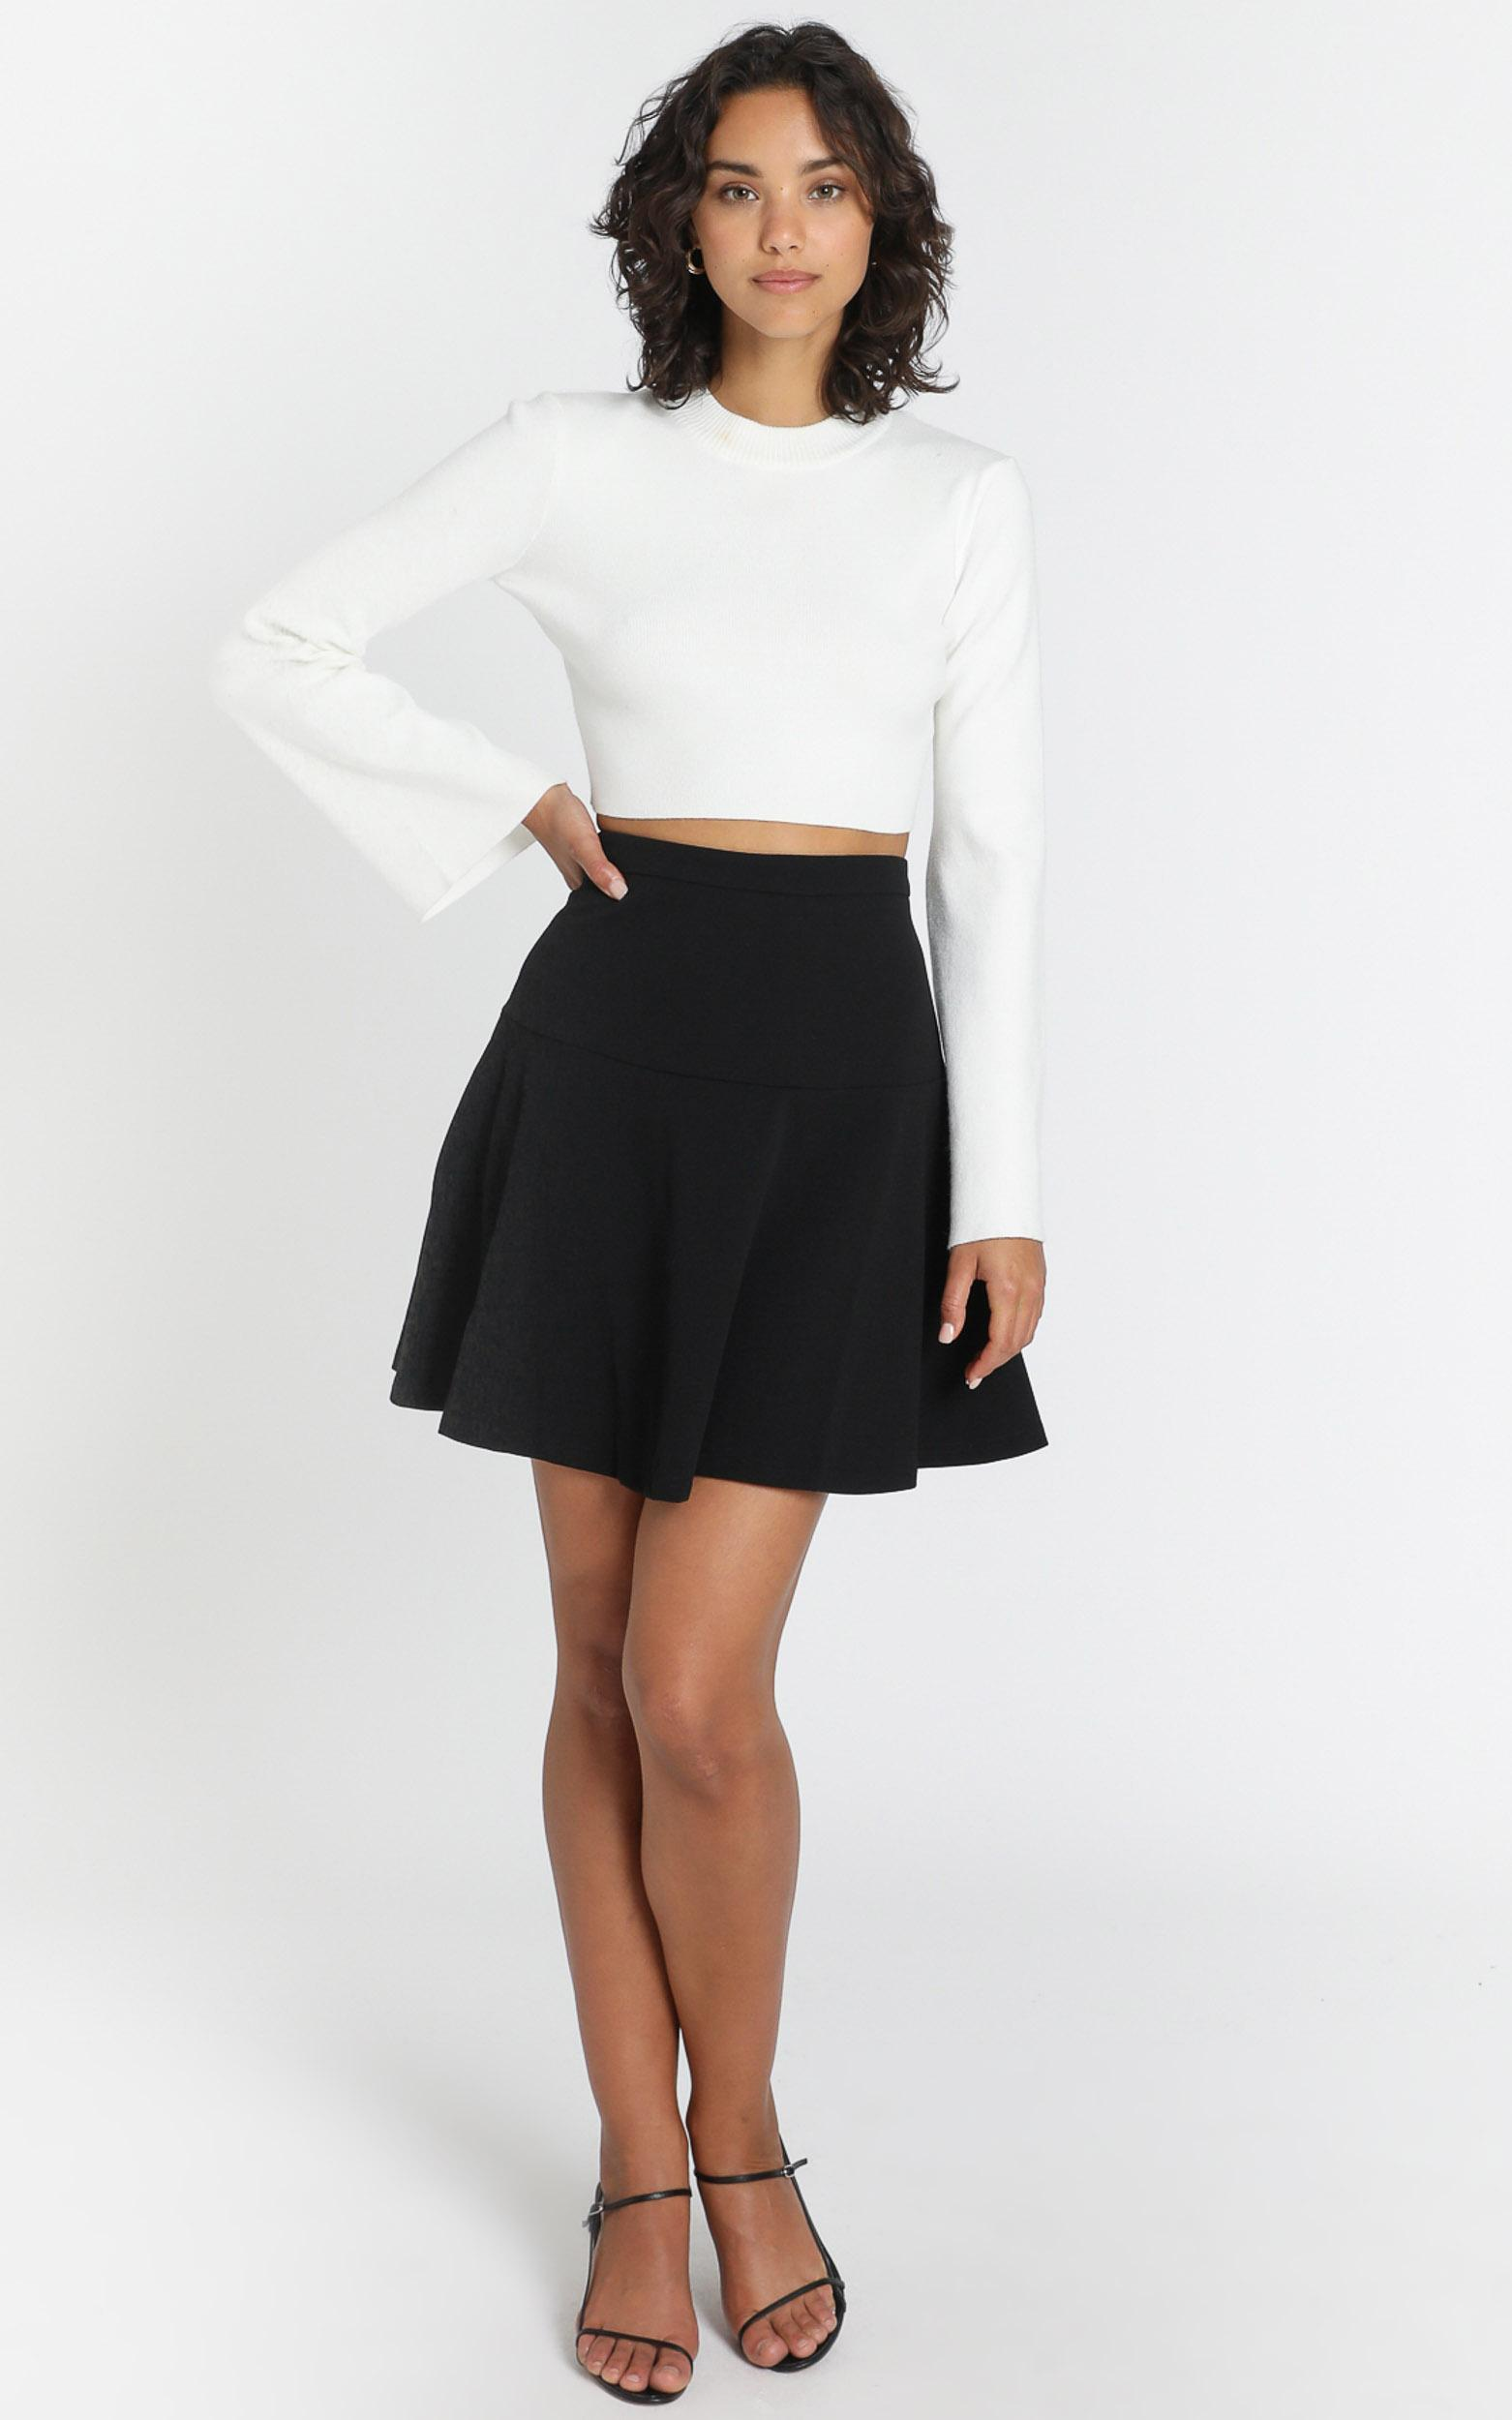 Synergy Skirt in black - 6 (XS), BLK1, hi-res image number null